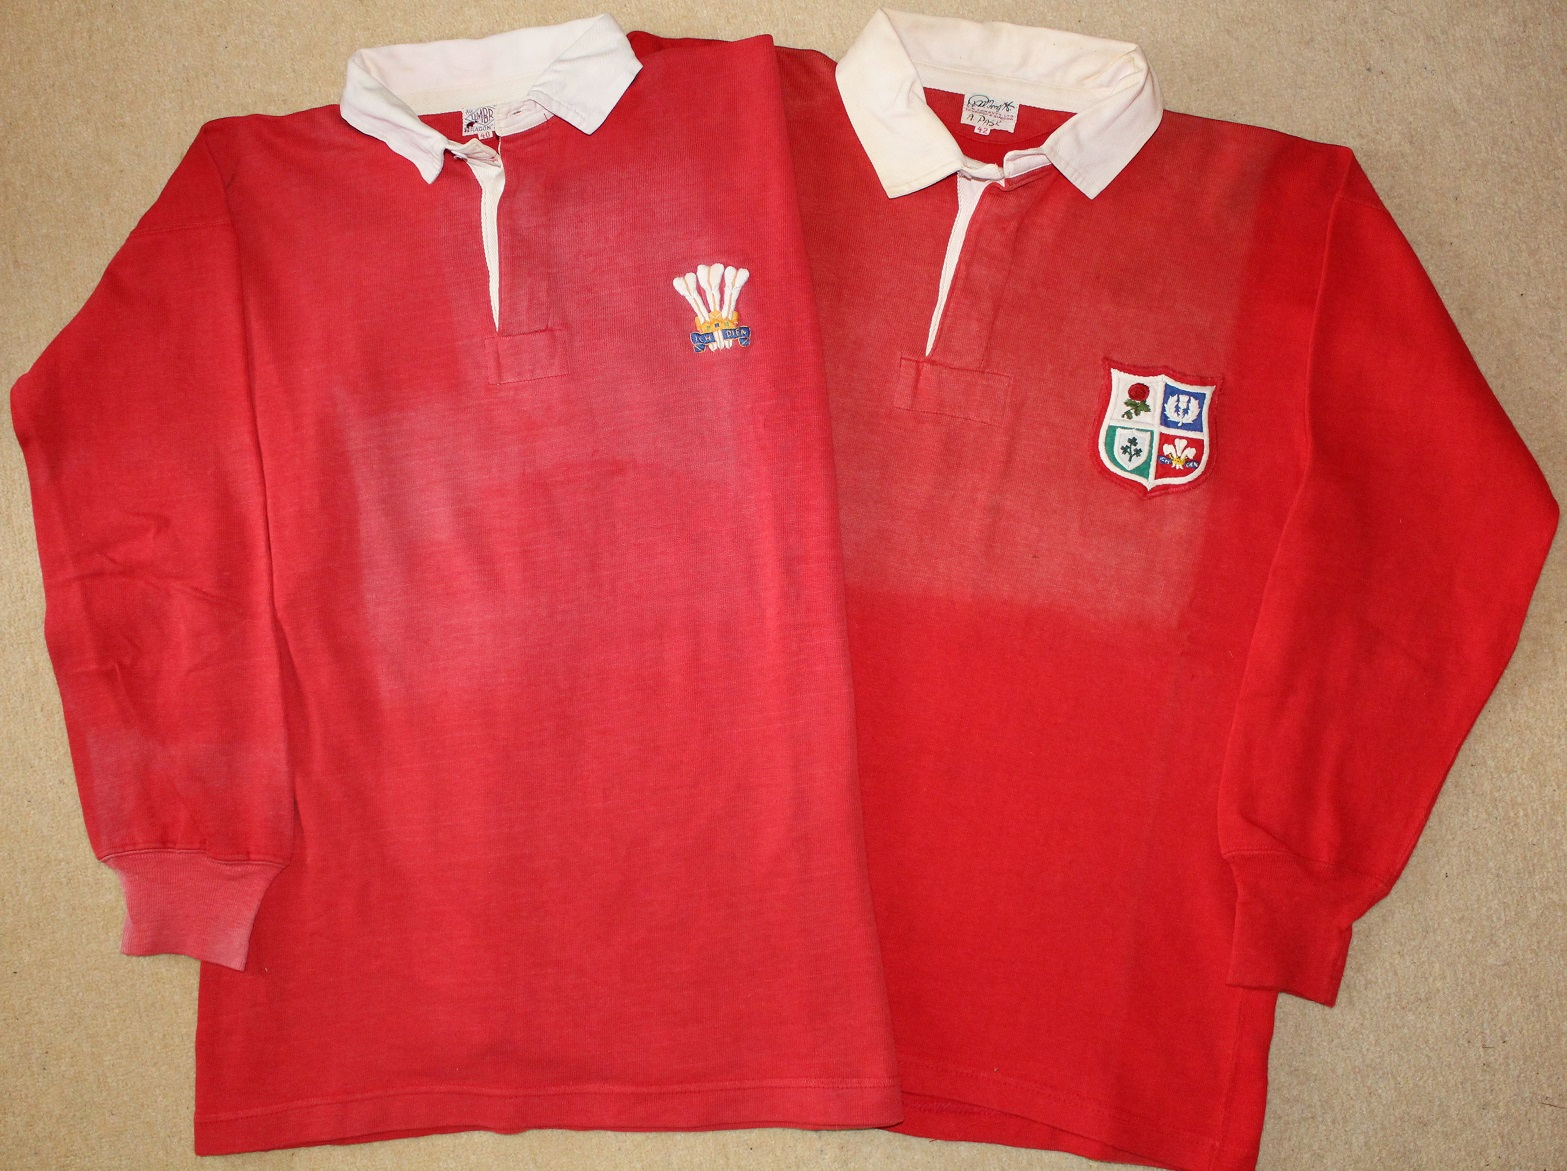 Alun Pask - Match Worn Jerseys - Rugby Memorabilia Society (2)